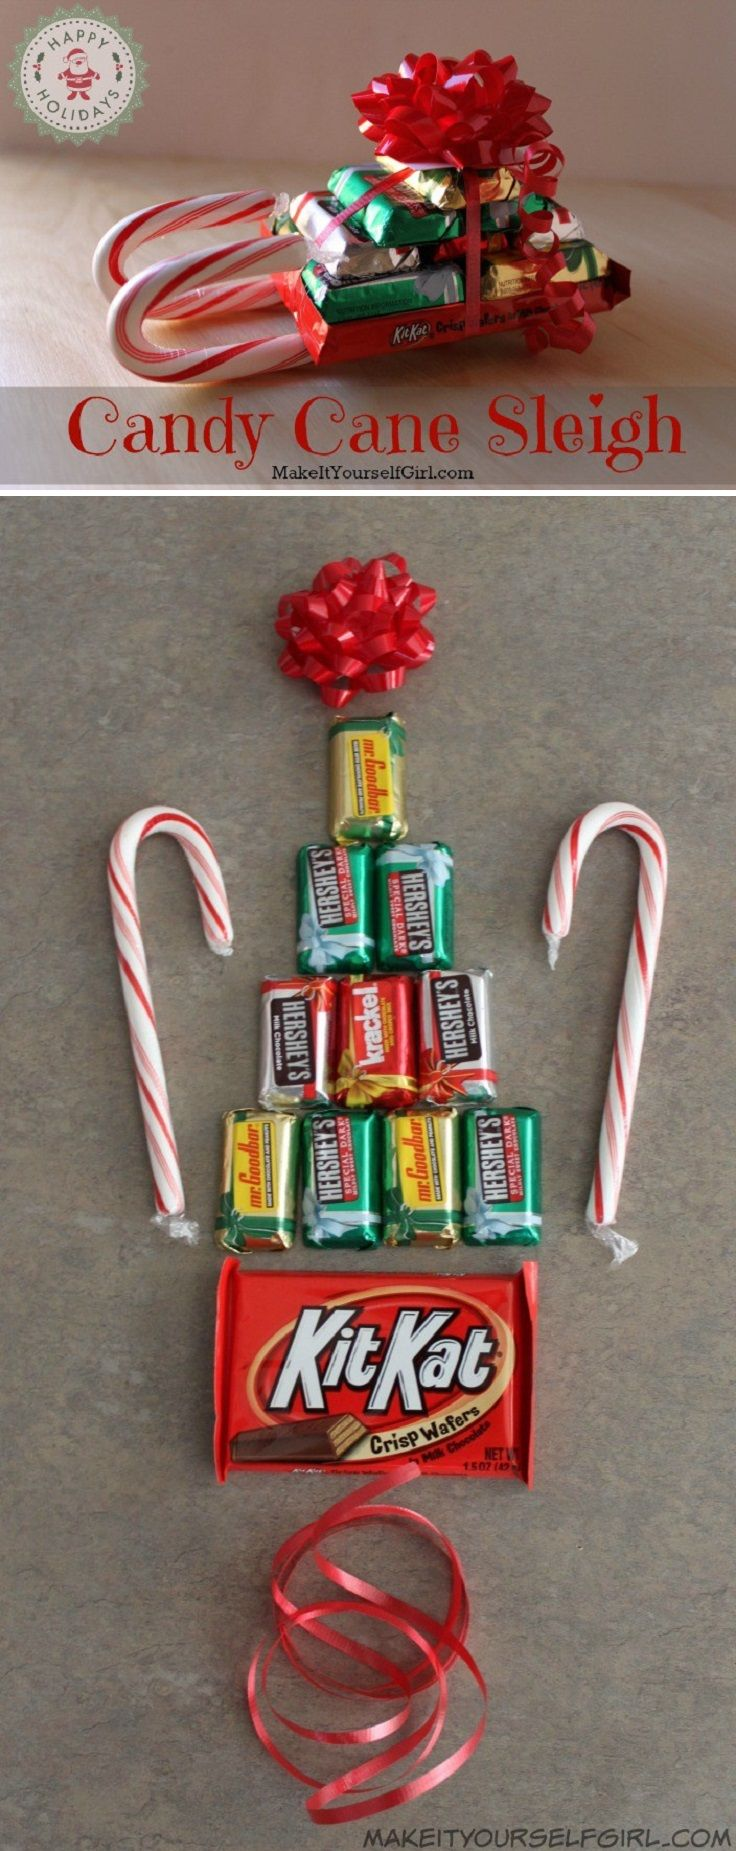 Christmas Candy Gifts.Simple Diy Candy Cane Sleigh 12 Wondrous Diy Candy Cane